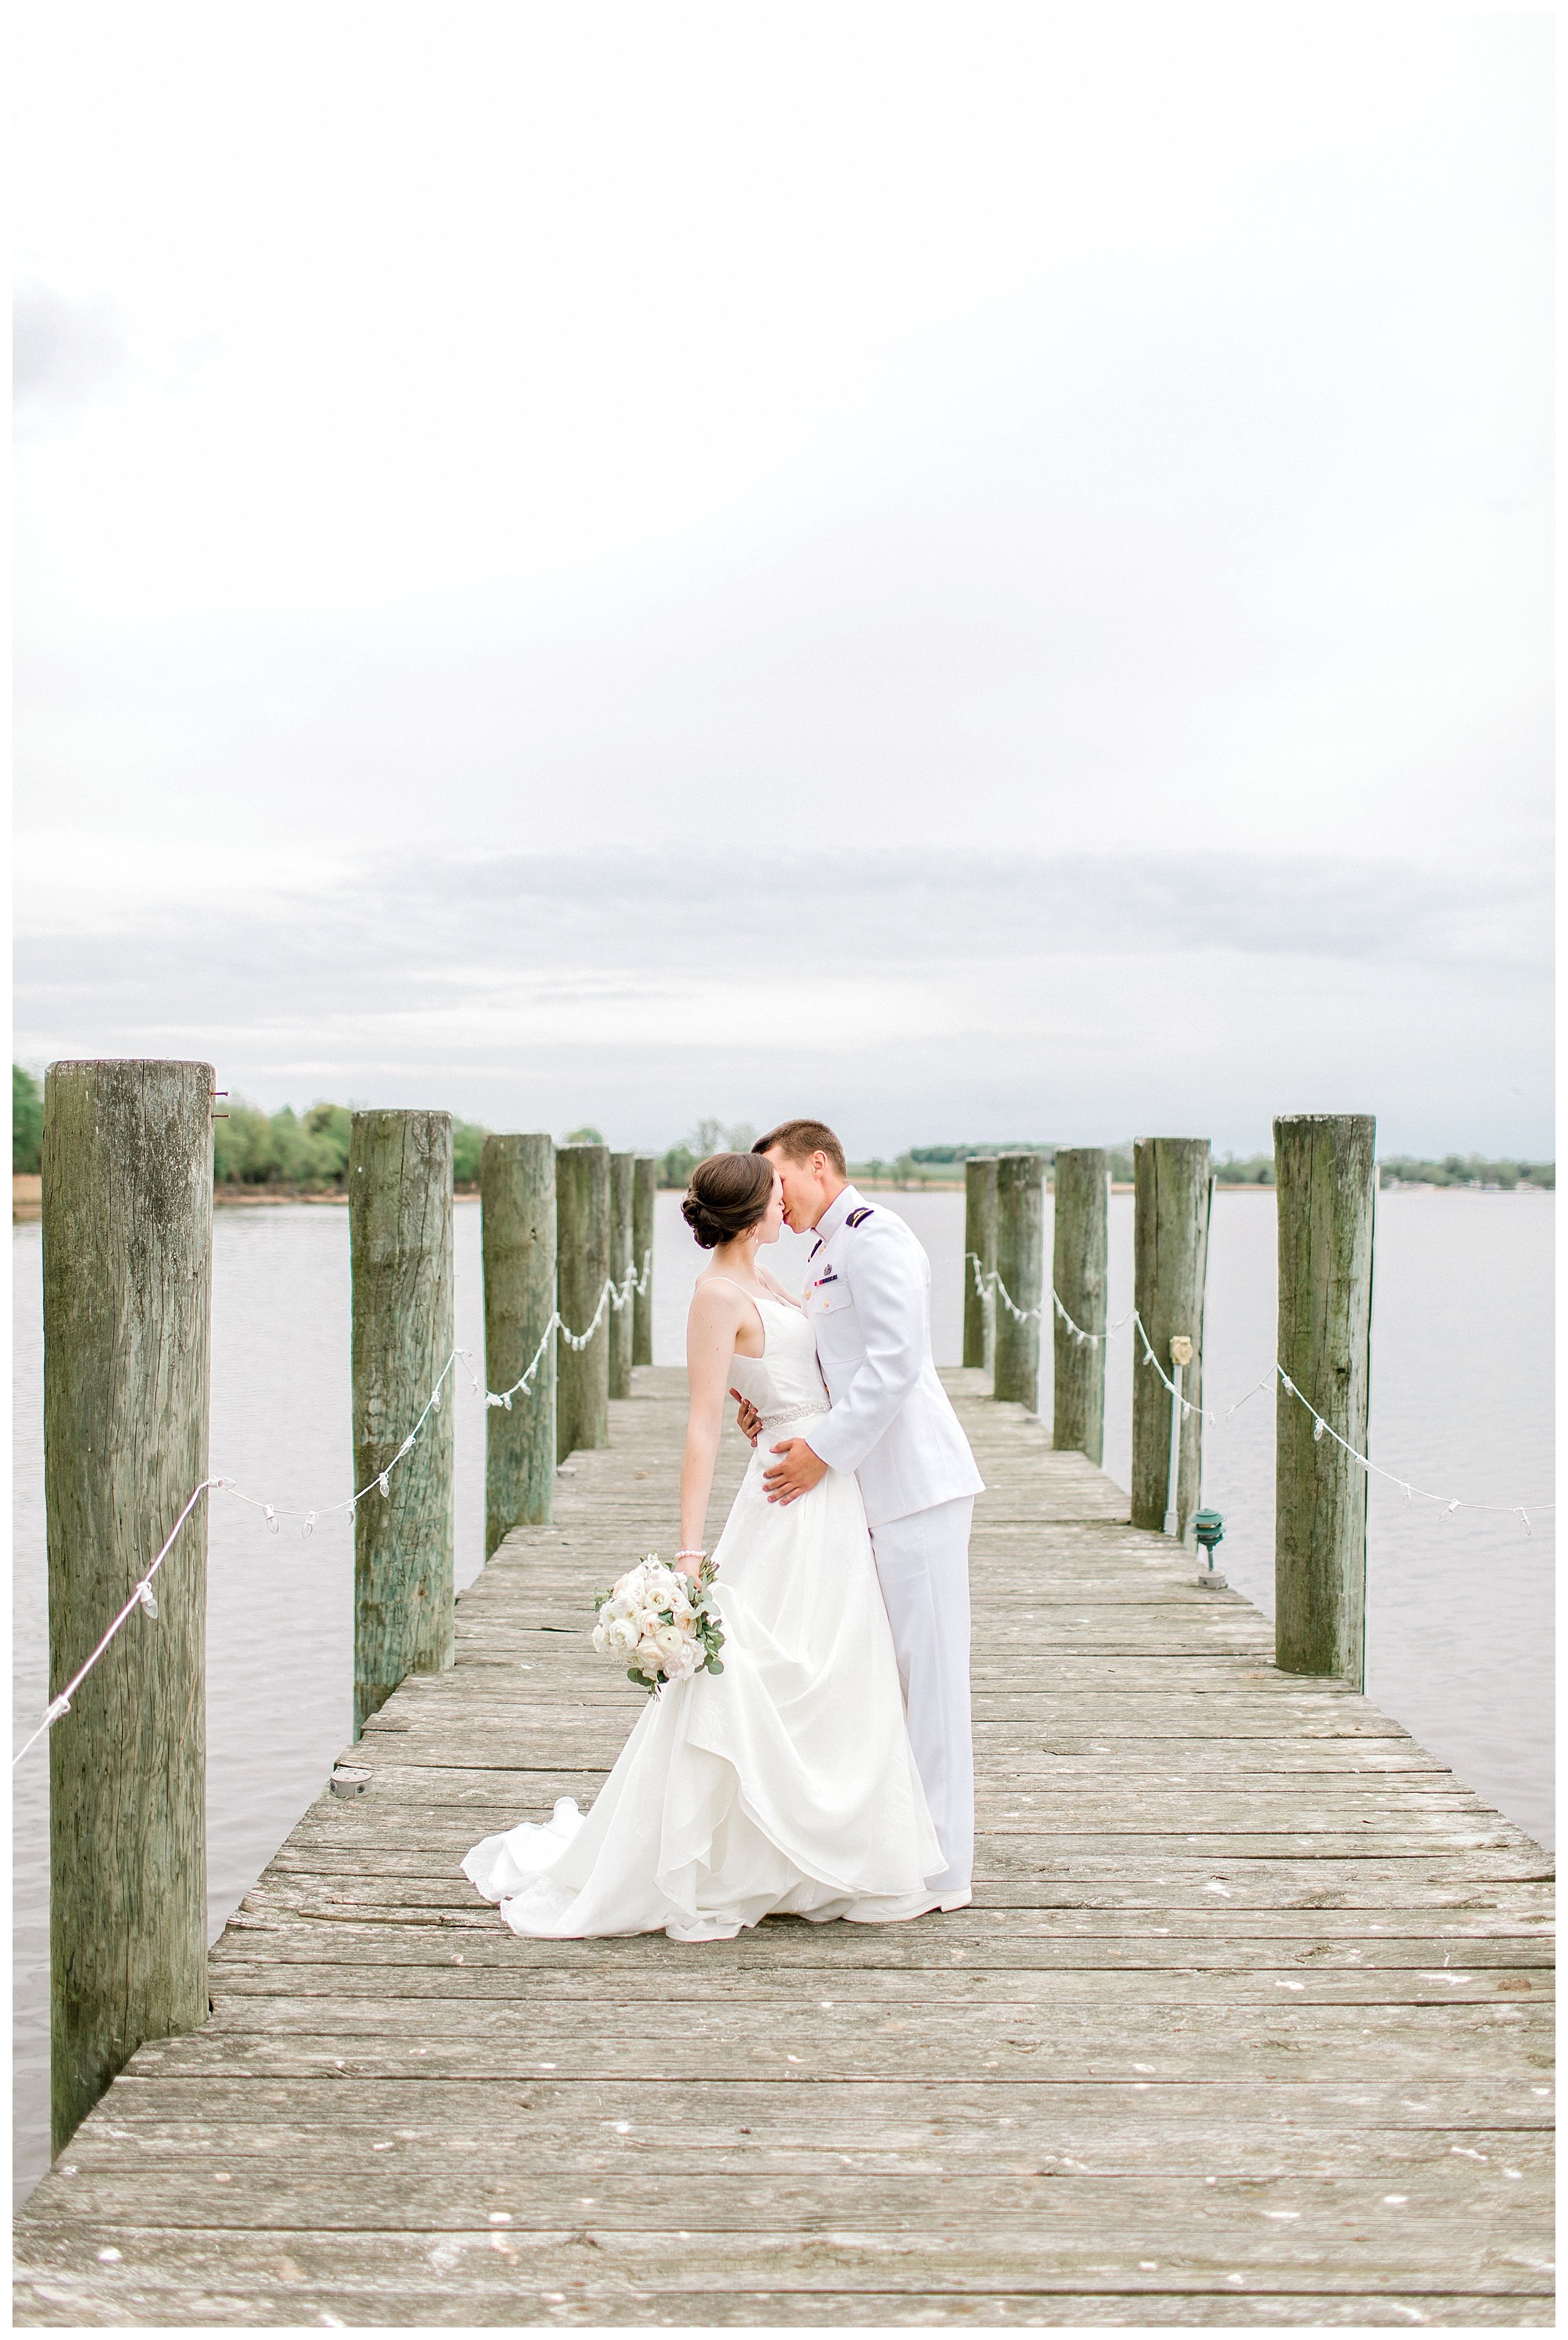 Marriage in maryland